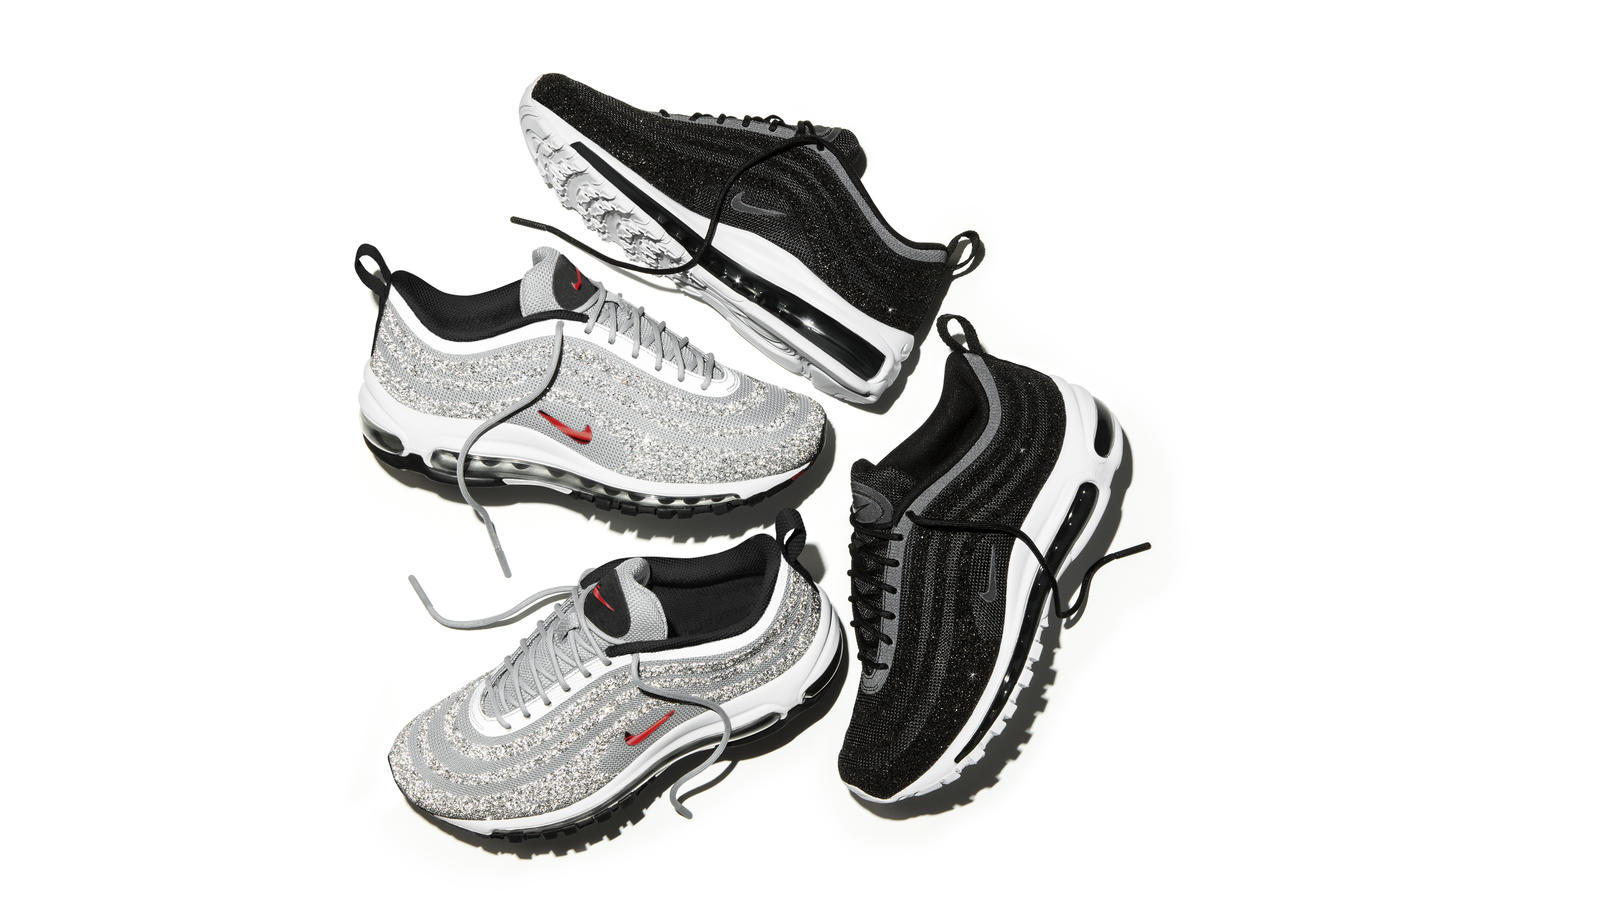 b1d8fb6e266 Introducing the Nike Air Max 97 LX